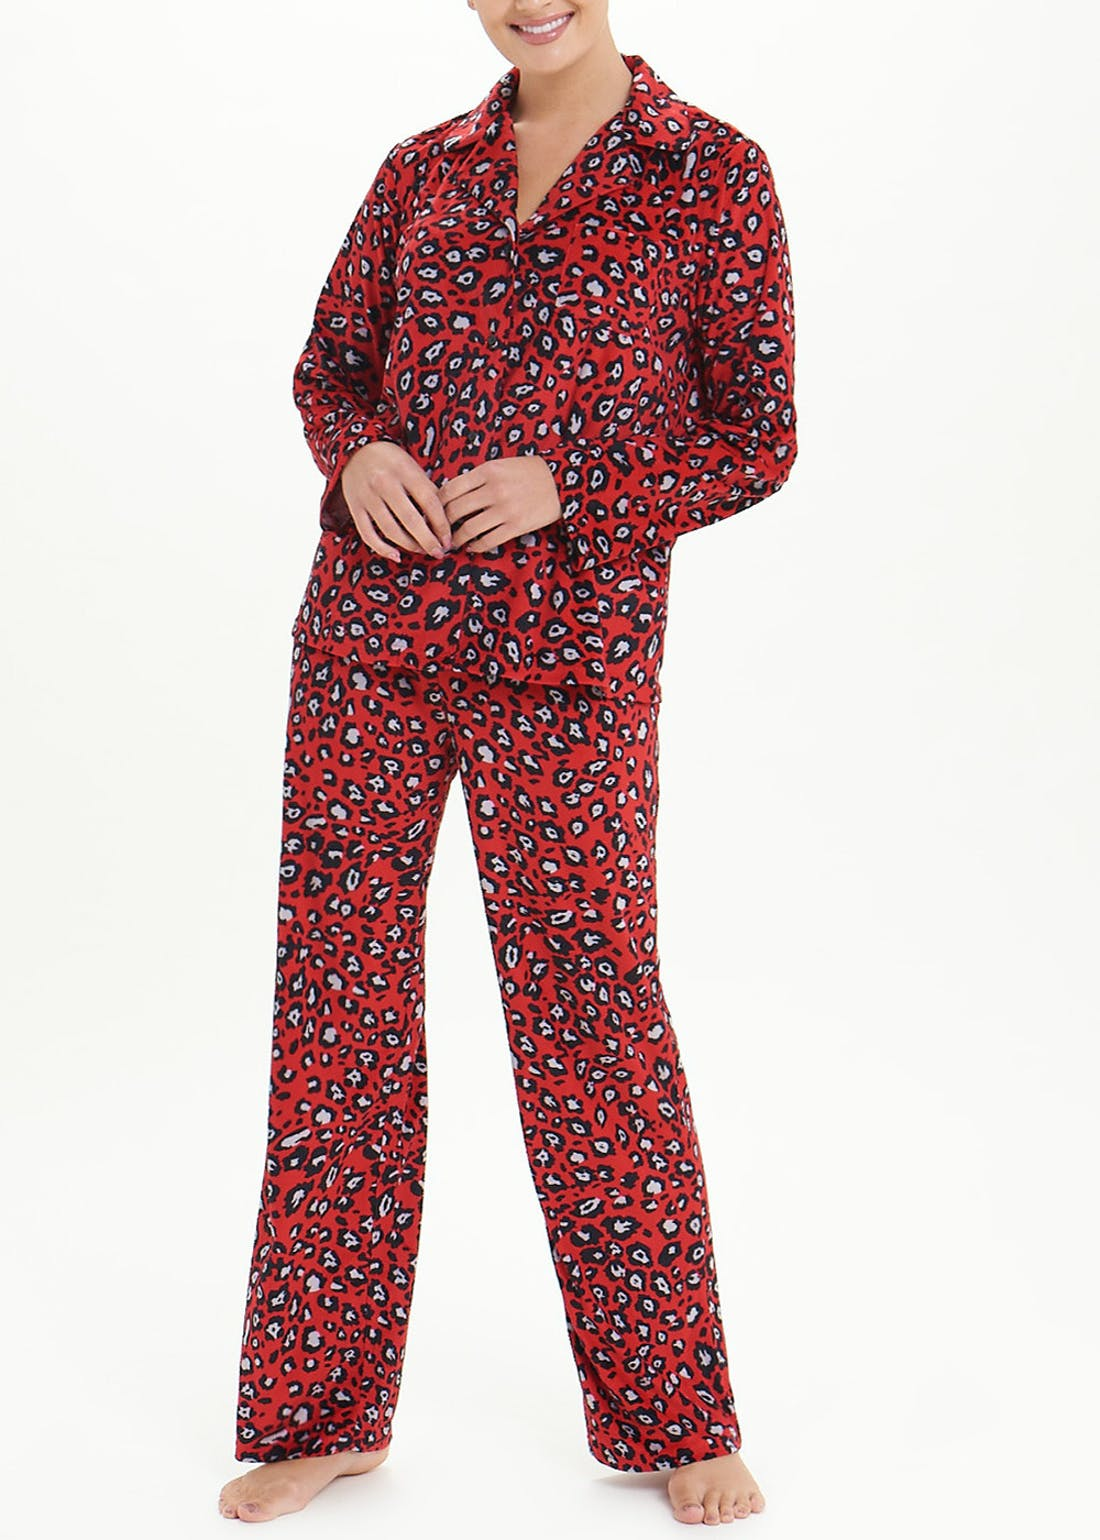 Leopard Print Fleece Pyjama Set